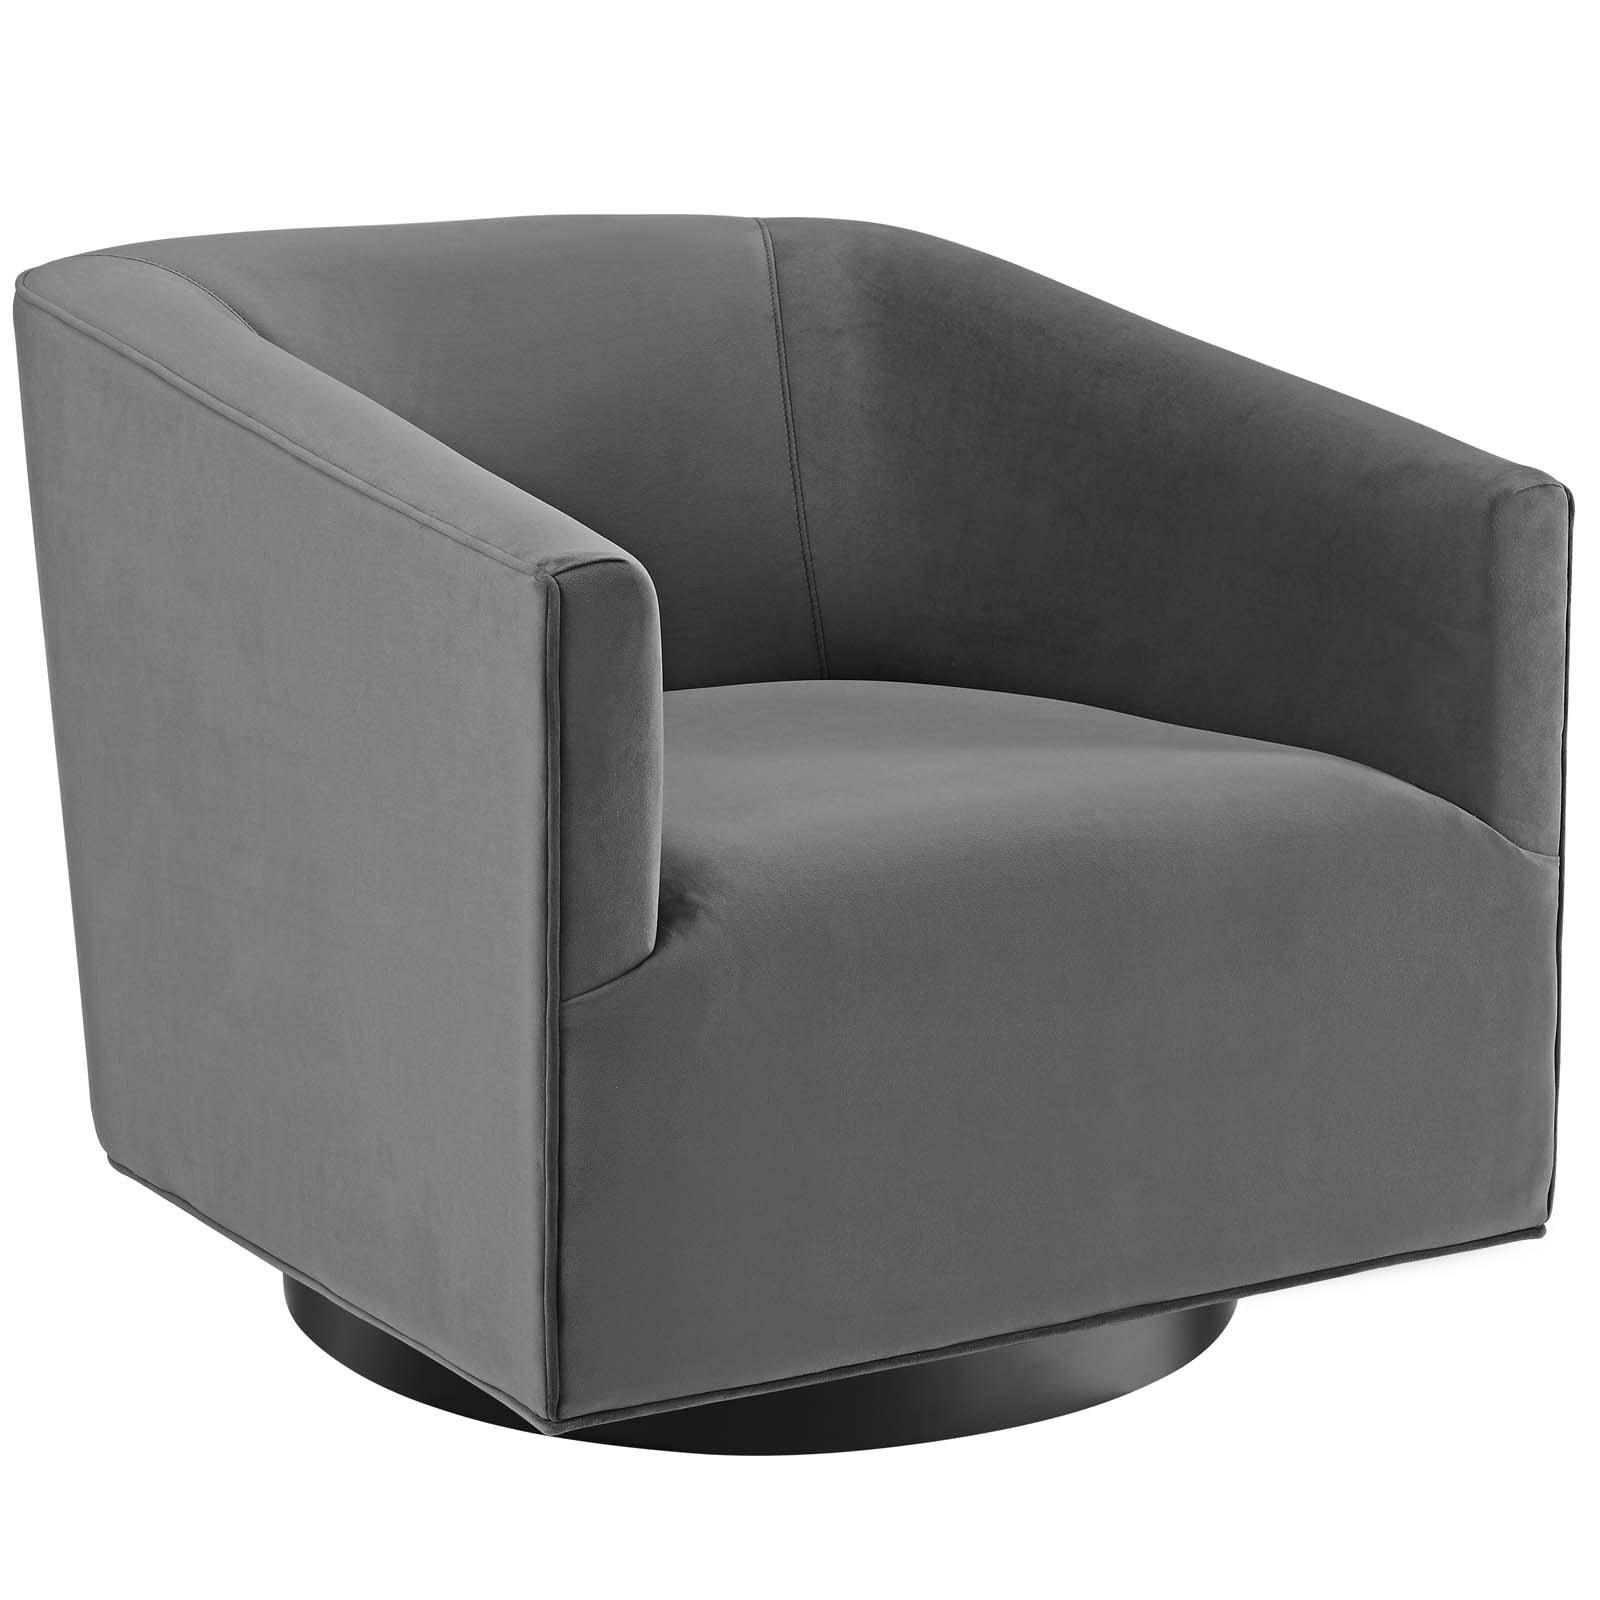 Fabulous Modway Accent Chairs On Sale Eei 3456 Gry Twist Accent Lounge Performance Velvet Swivel Chair Only Only 484 80 At Contemporary Furniture Warehouse Creativecarmelina Interior Chair Design Creativecarmelinacom